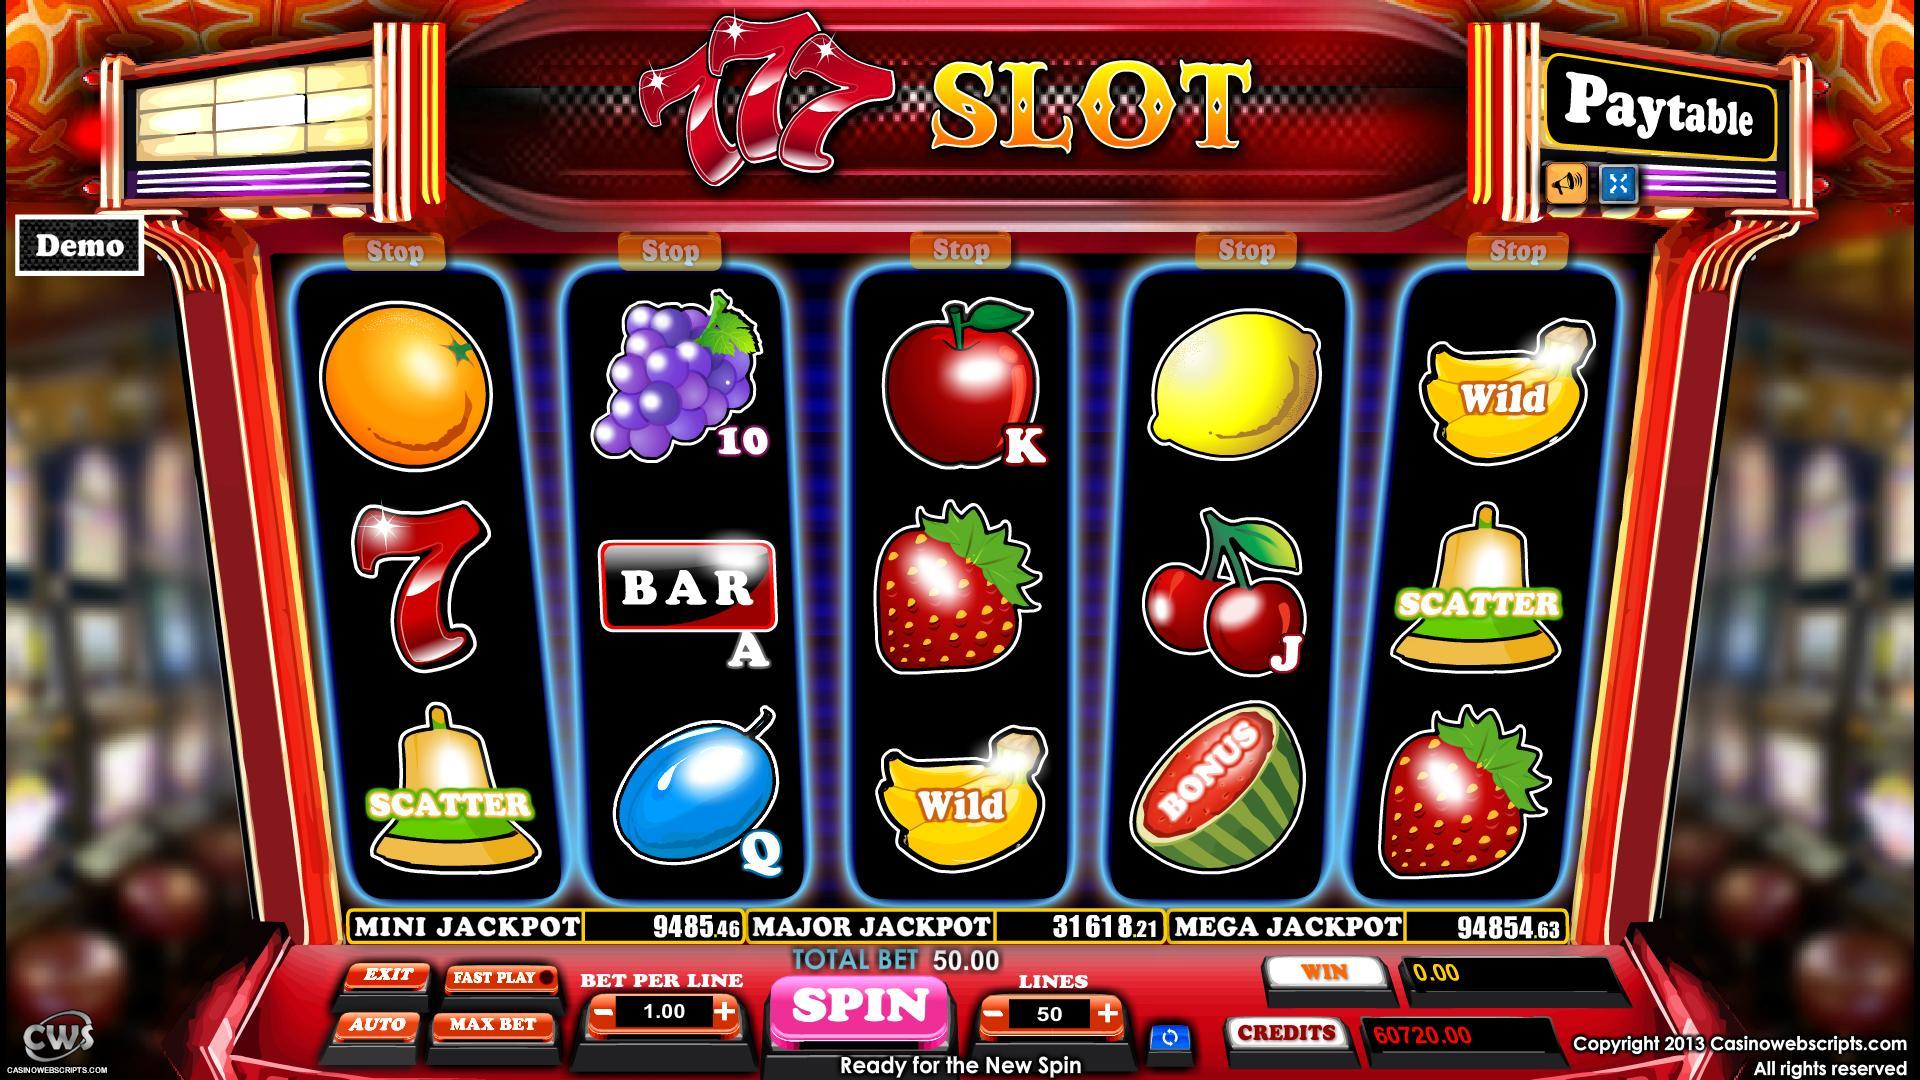 RumpelThrillSpins Slot Machine - Play this Video Slot Online